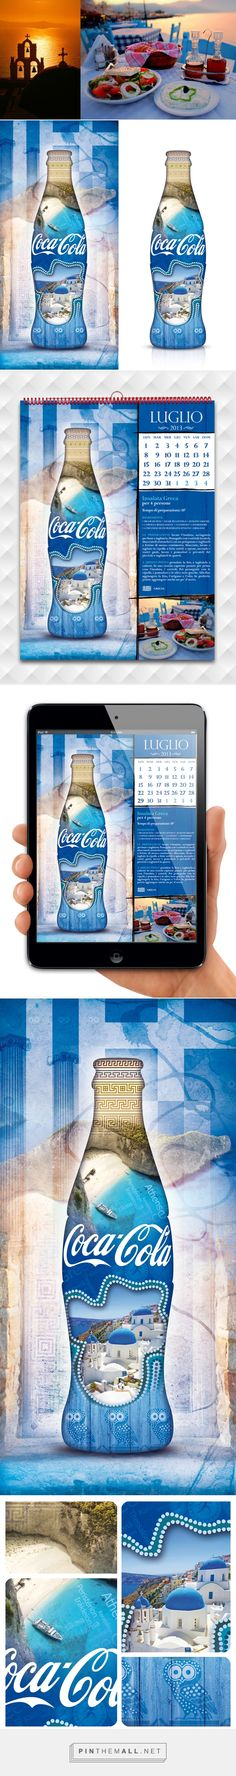 Coca-Cola refresh the summer Greek on Behance by Mattia Generali curated by Packaging Diva PD. Beautiful blue packaging design concepts.